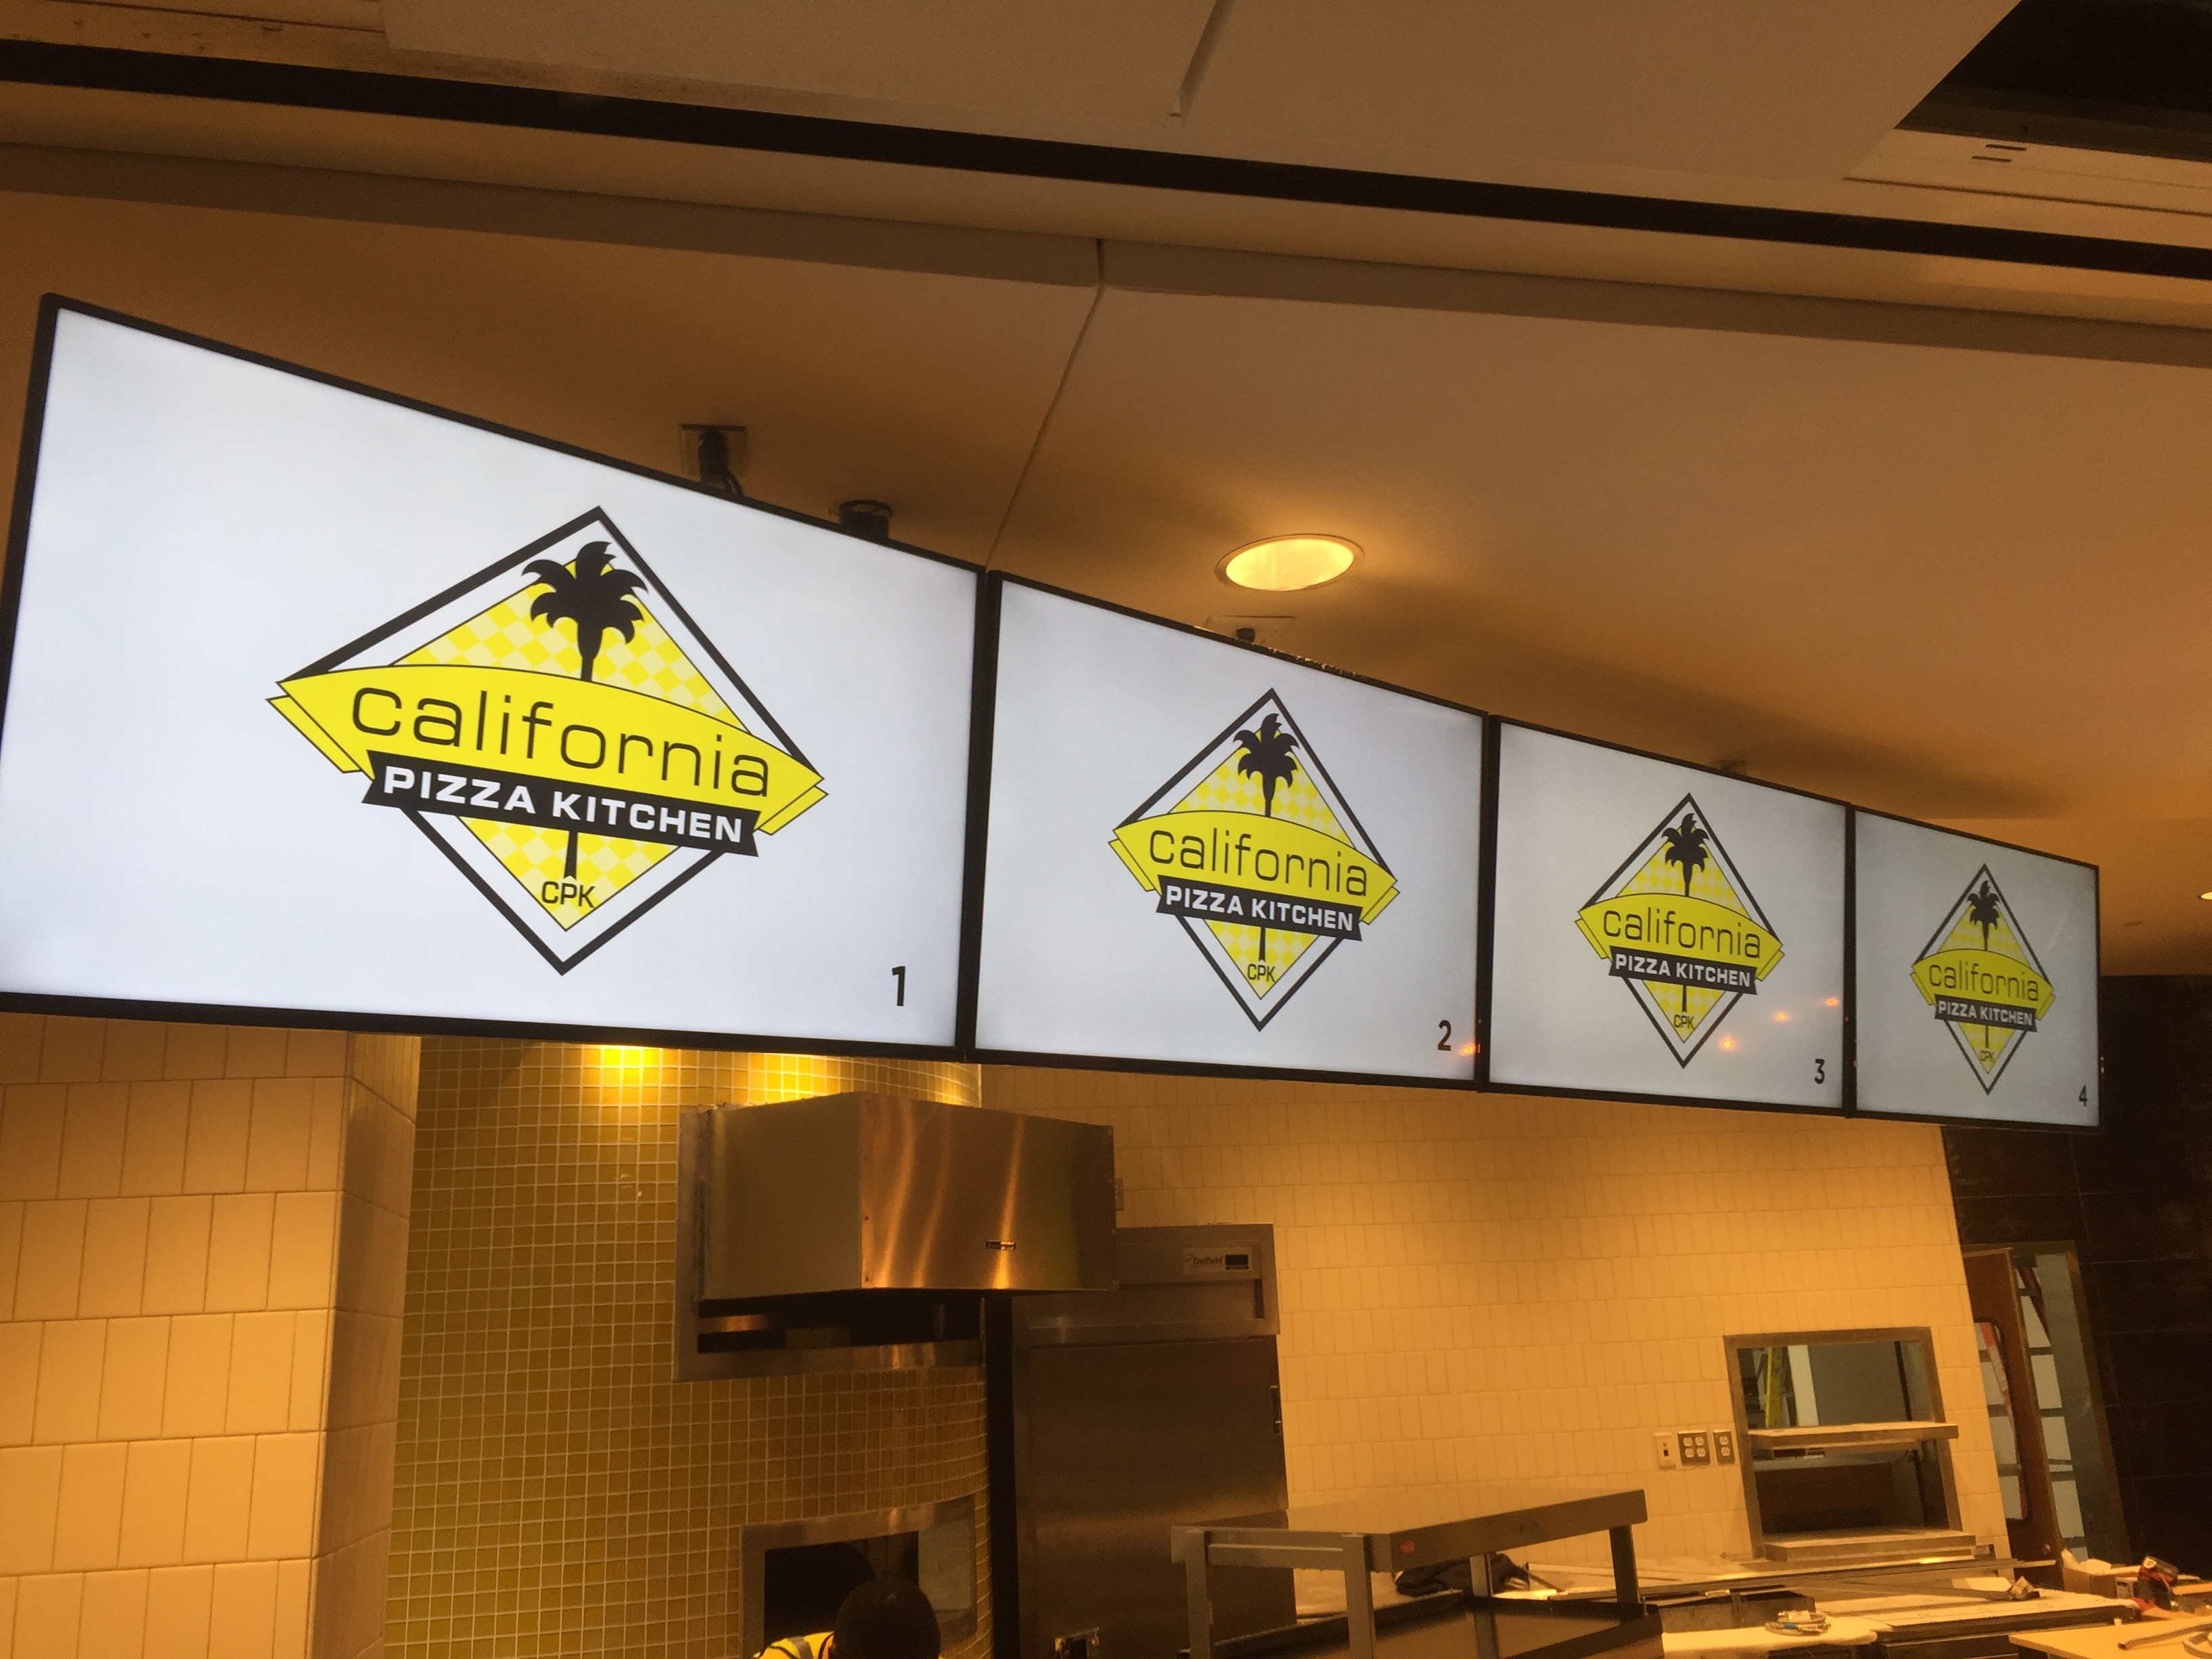 California Pizza Kitchen Dfw Airport